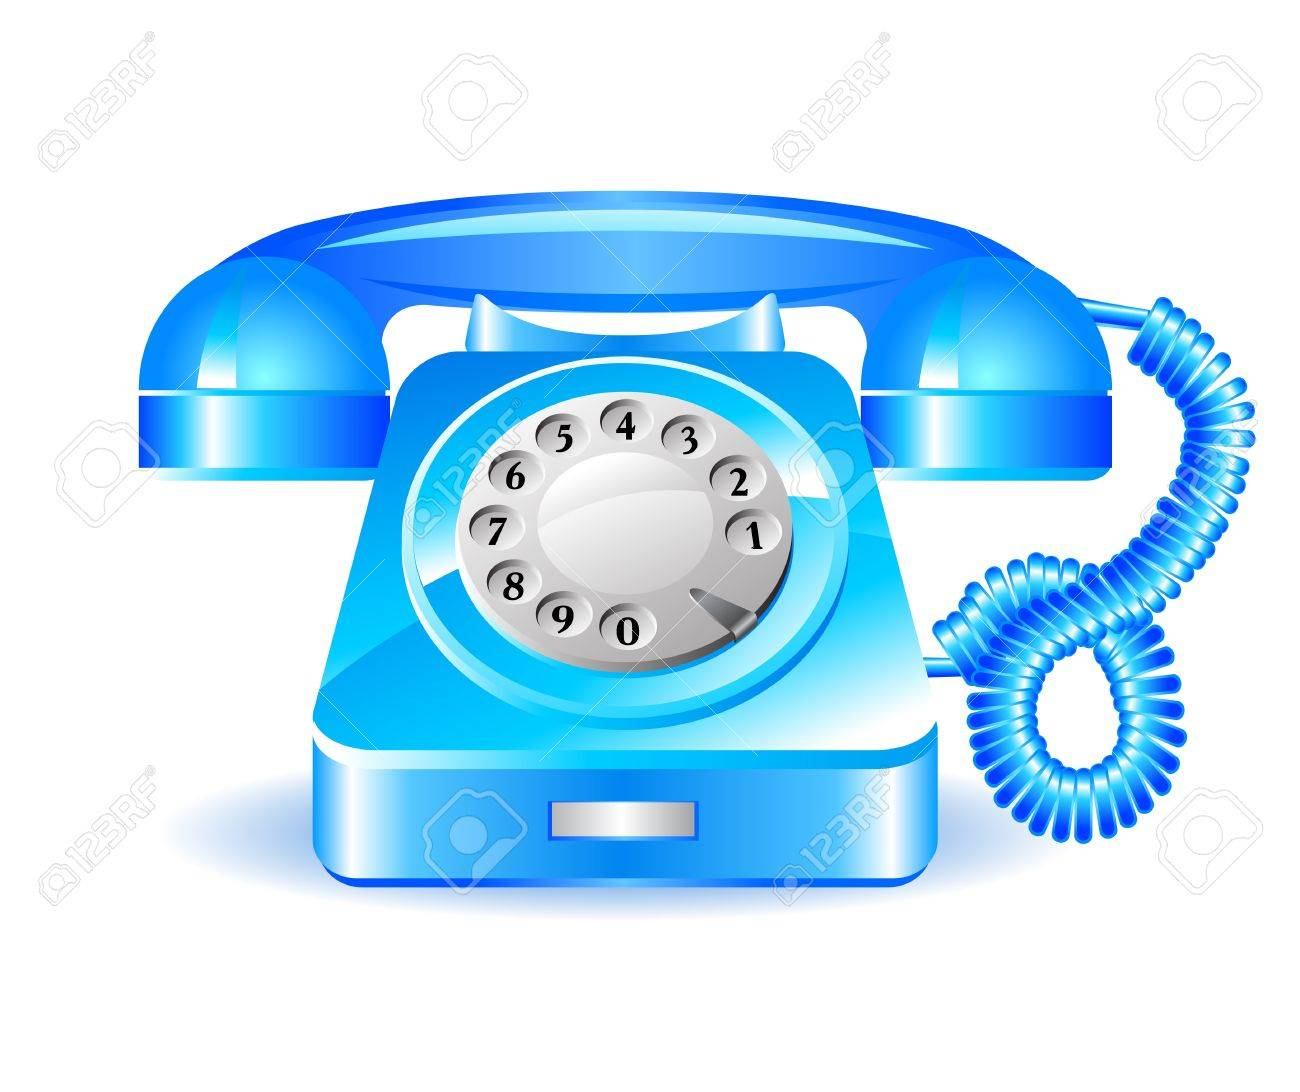 https://previews.123rf.com/images/eleter/eleter1304/eleter130400073/19117037-Retro-blue-telephone-Stock-Photo.jpg